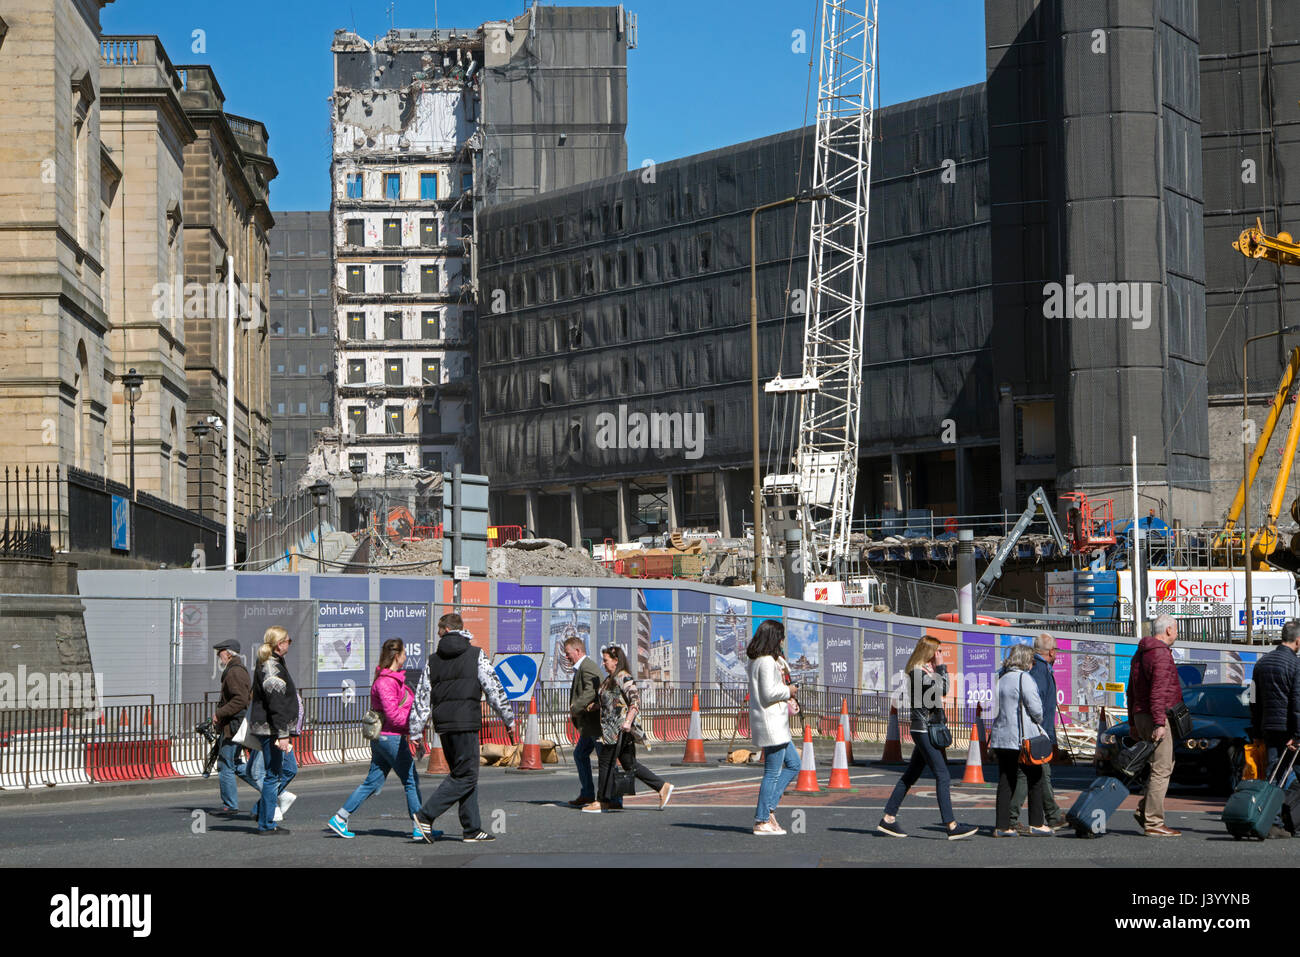 Pedestrians walk by the St James Centre which is being demolished to make way for a new hotel, shops and appartments. - Stock Image